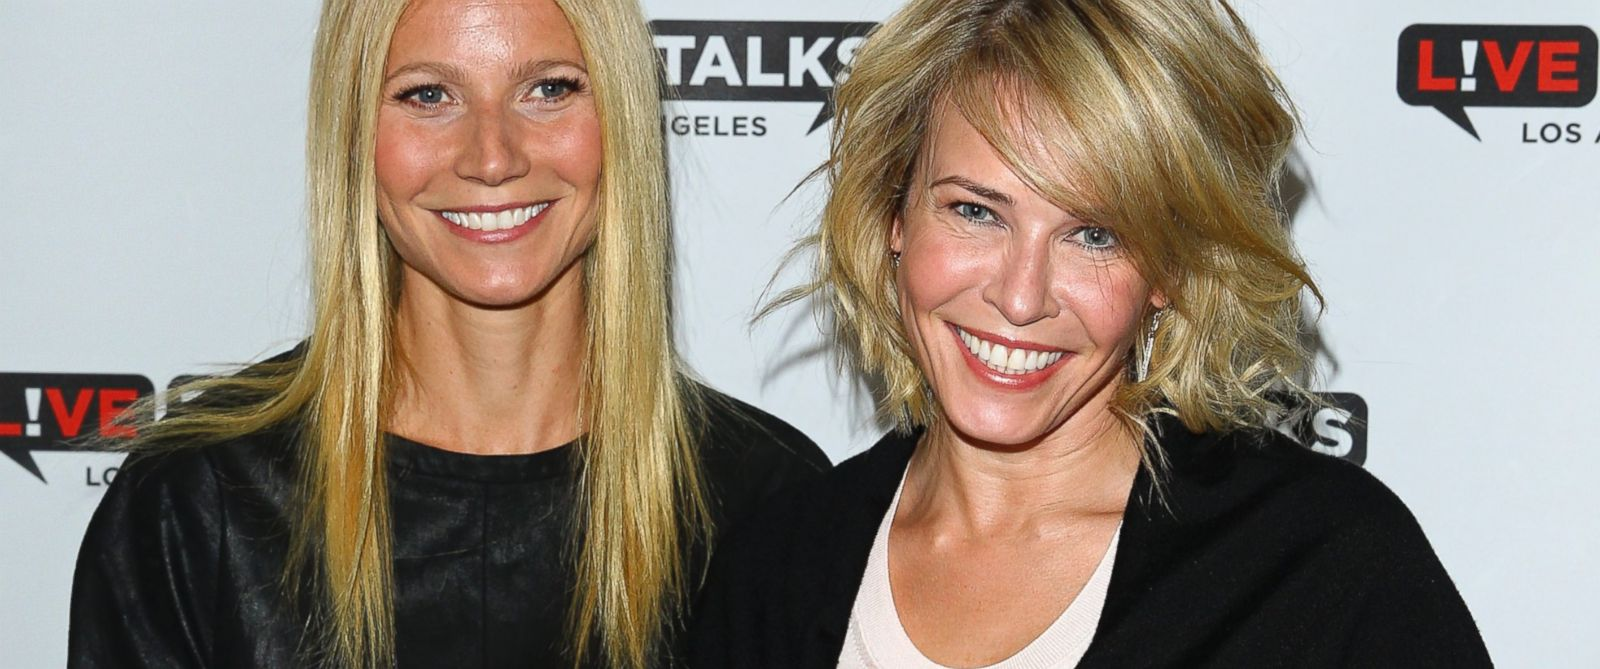 PHOTO: Gwyneth Paltrow and Chelsea Handler attend An Evening With Chelsea Handler In Conversation with Gwyneth Paltrow at Alex Theatre, March 11, 2014, in Glendale, Calif.